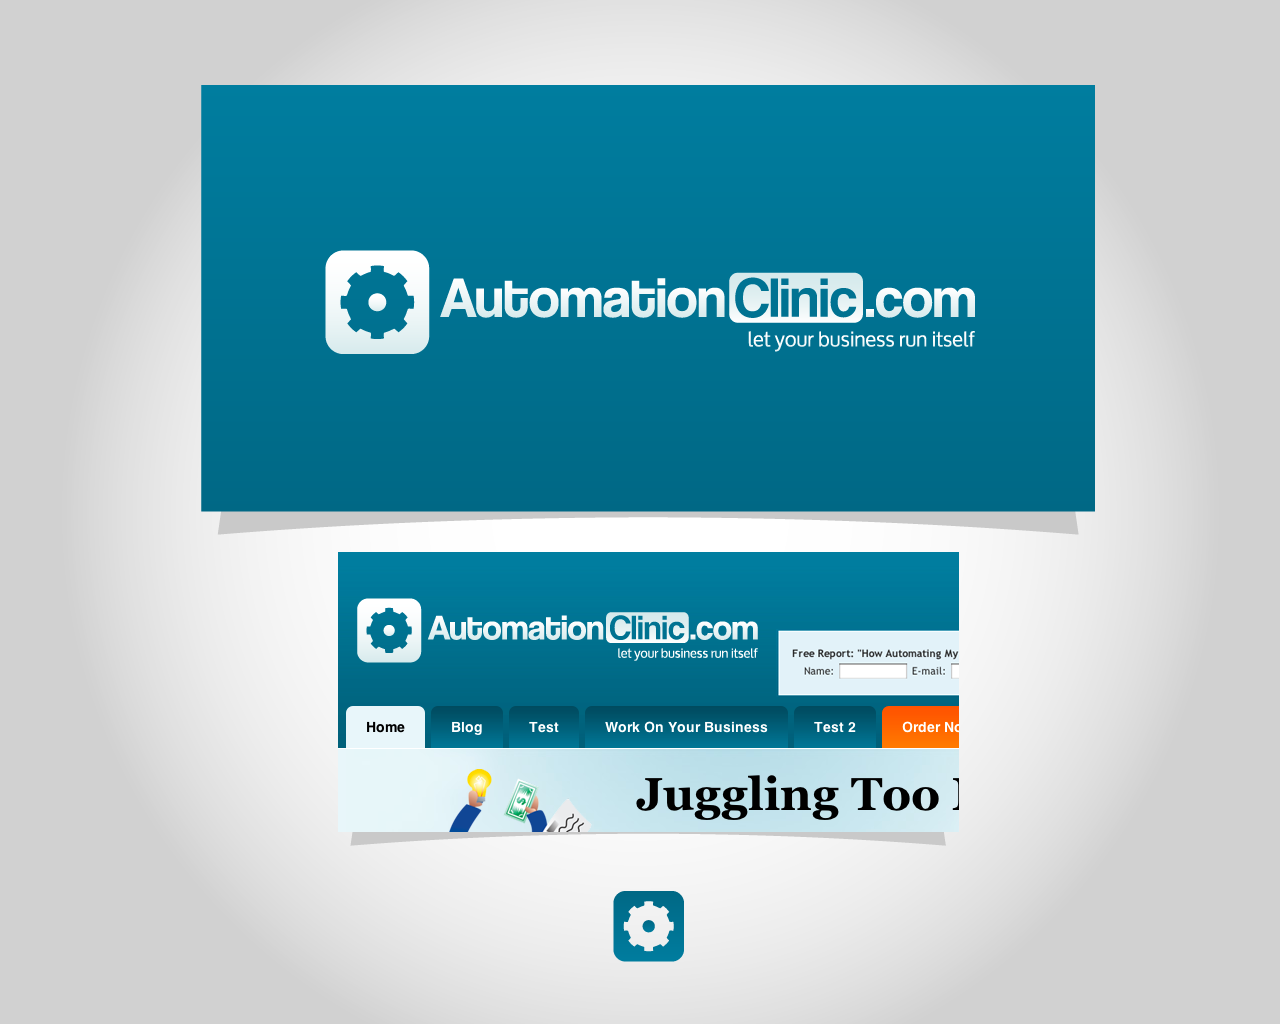 New logo wanted for AutomationClinic.com - Web 2.0 style!